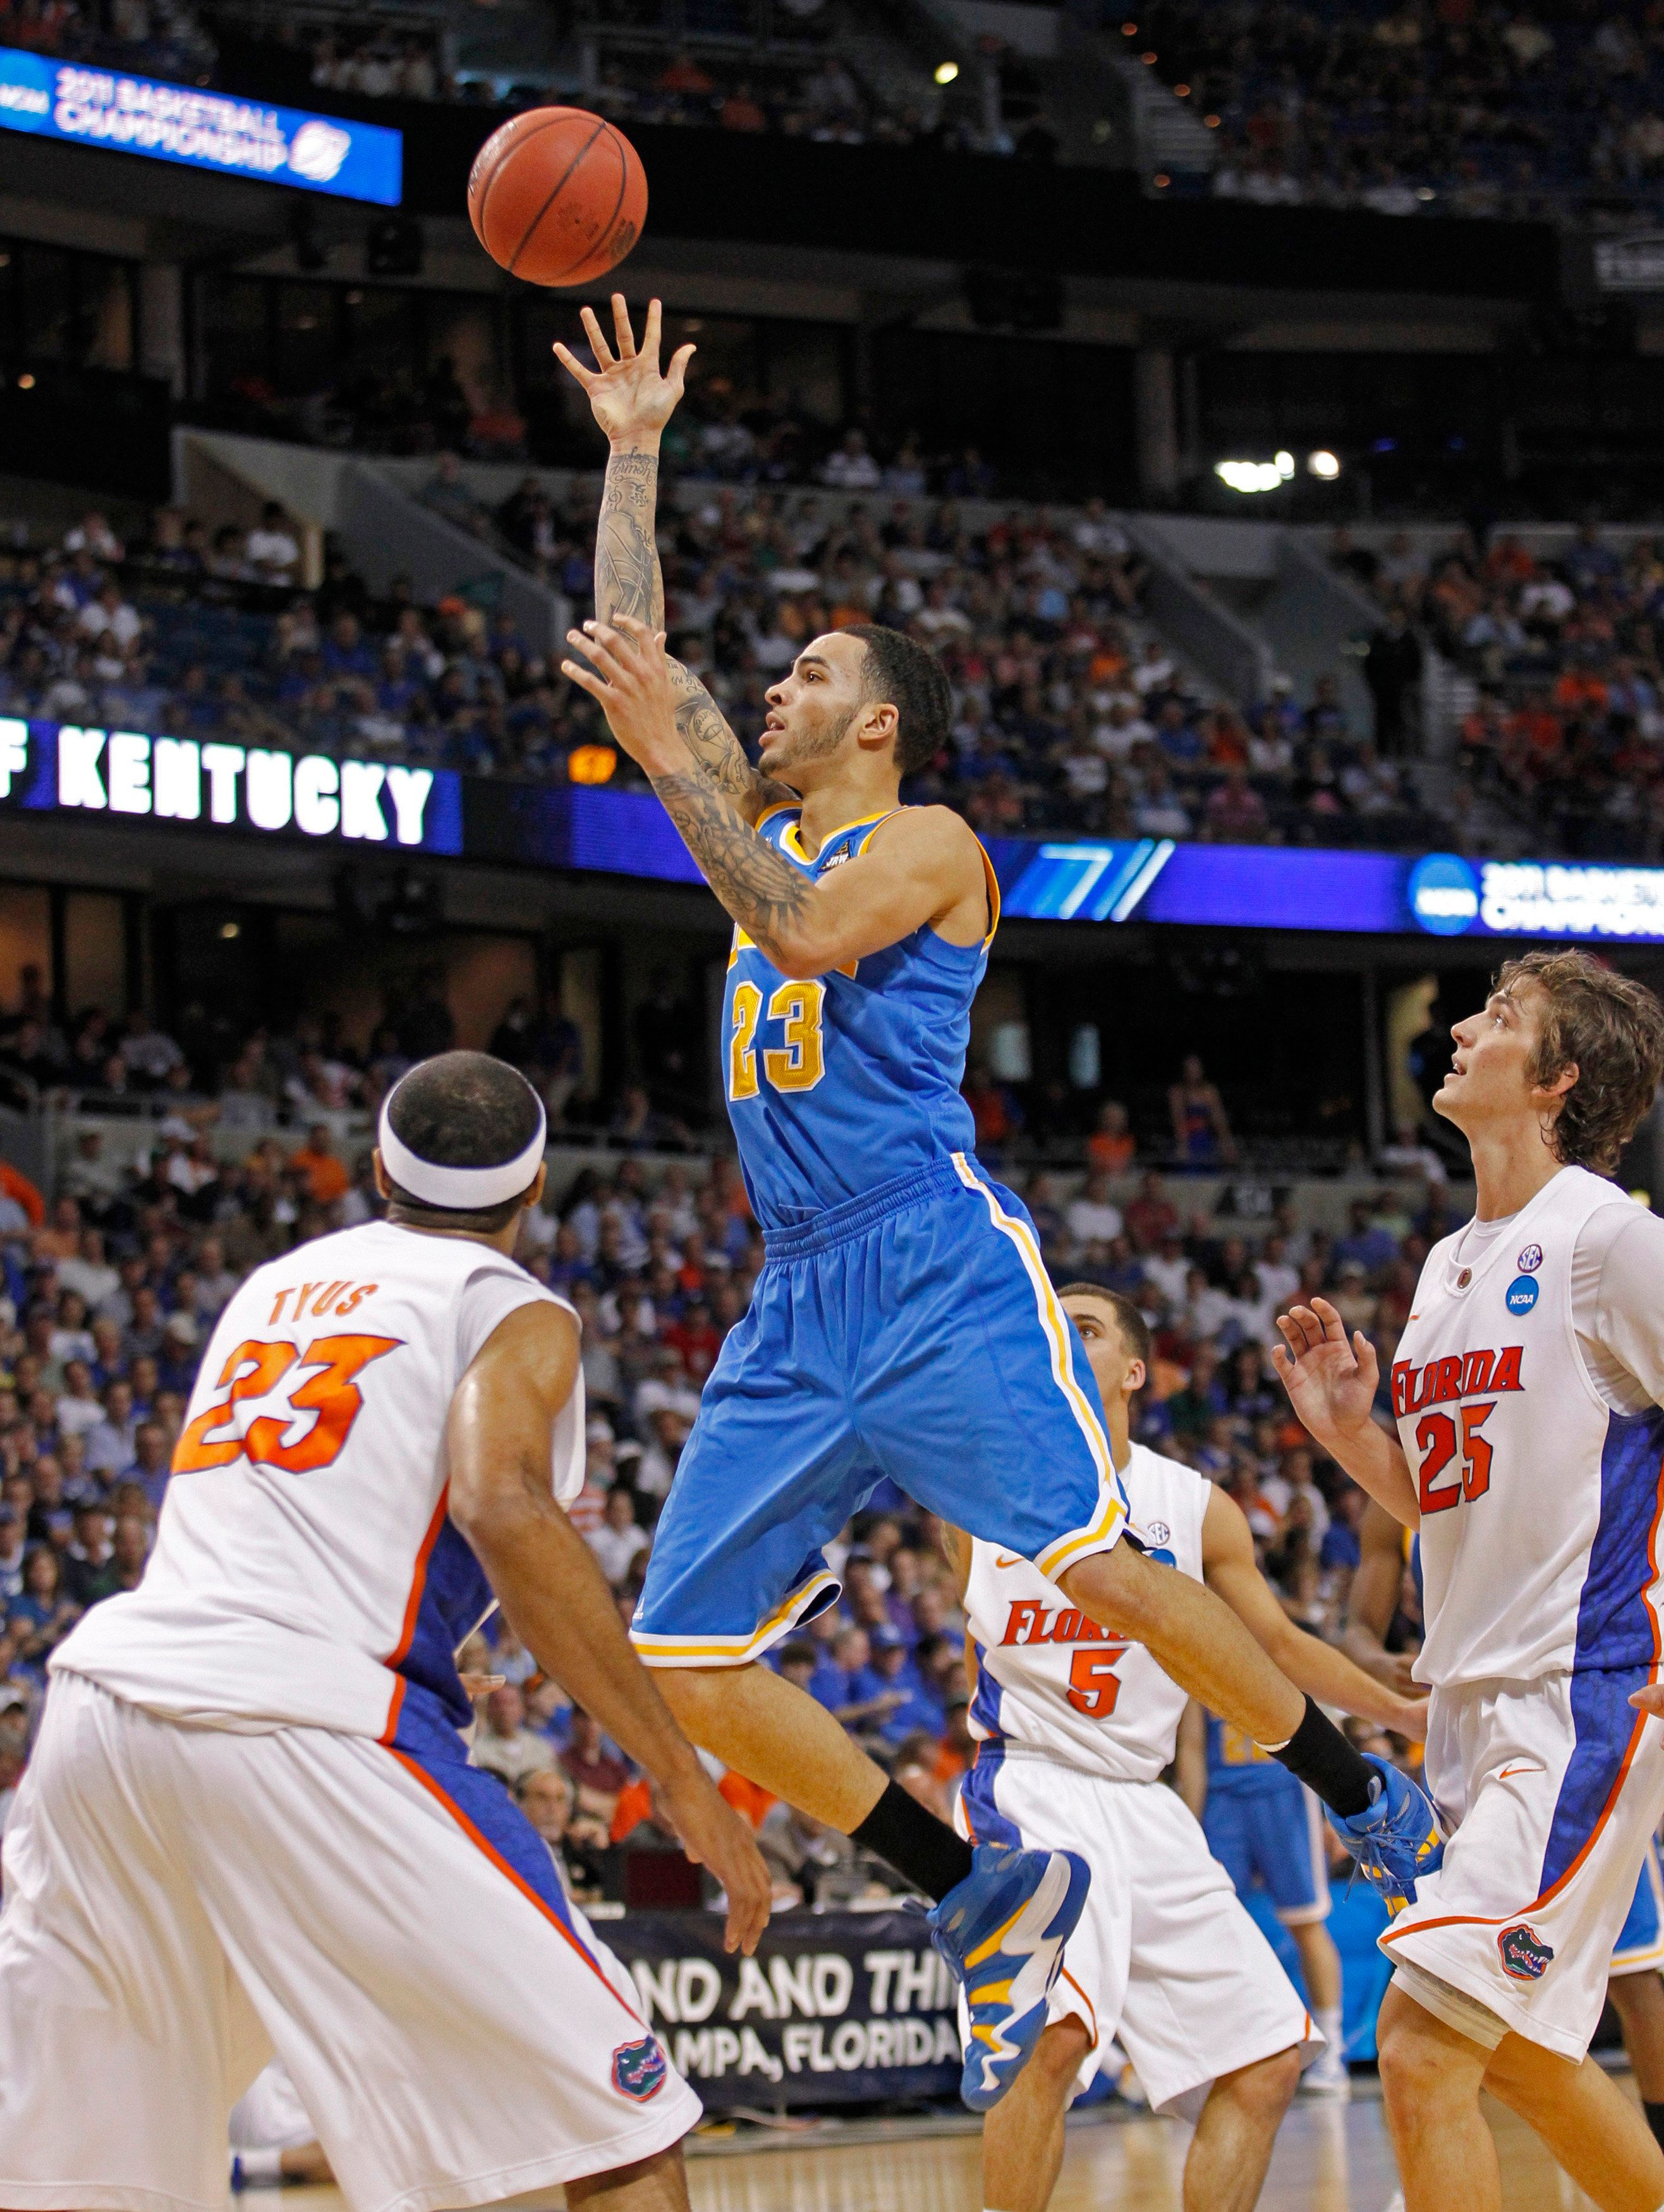 Tyler Honeycutt (top) shoots during a 2011 game when he played for the UCLA Bruins. Honeycutt was found dead early Saturday m